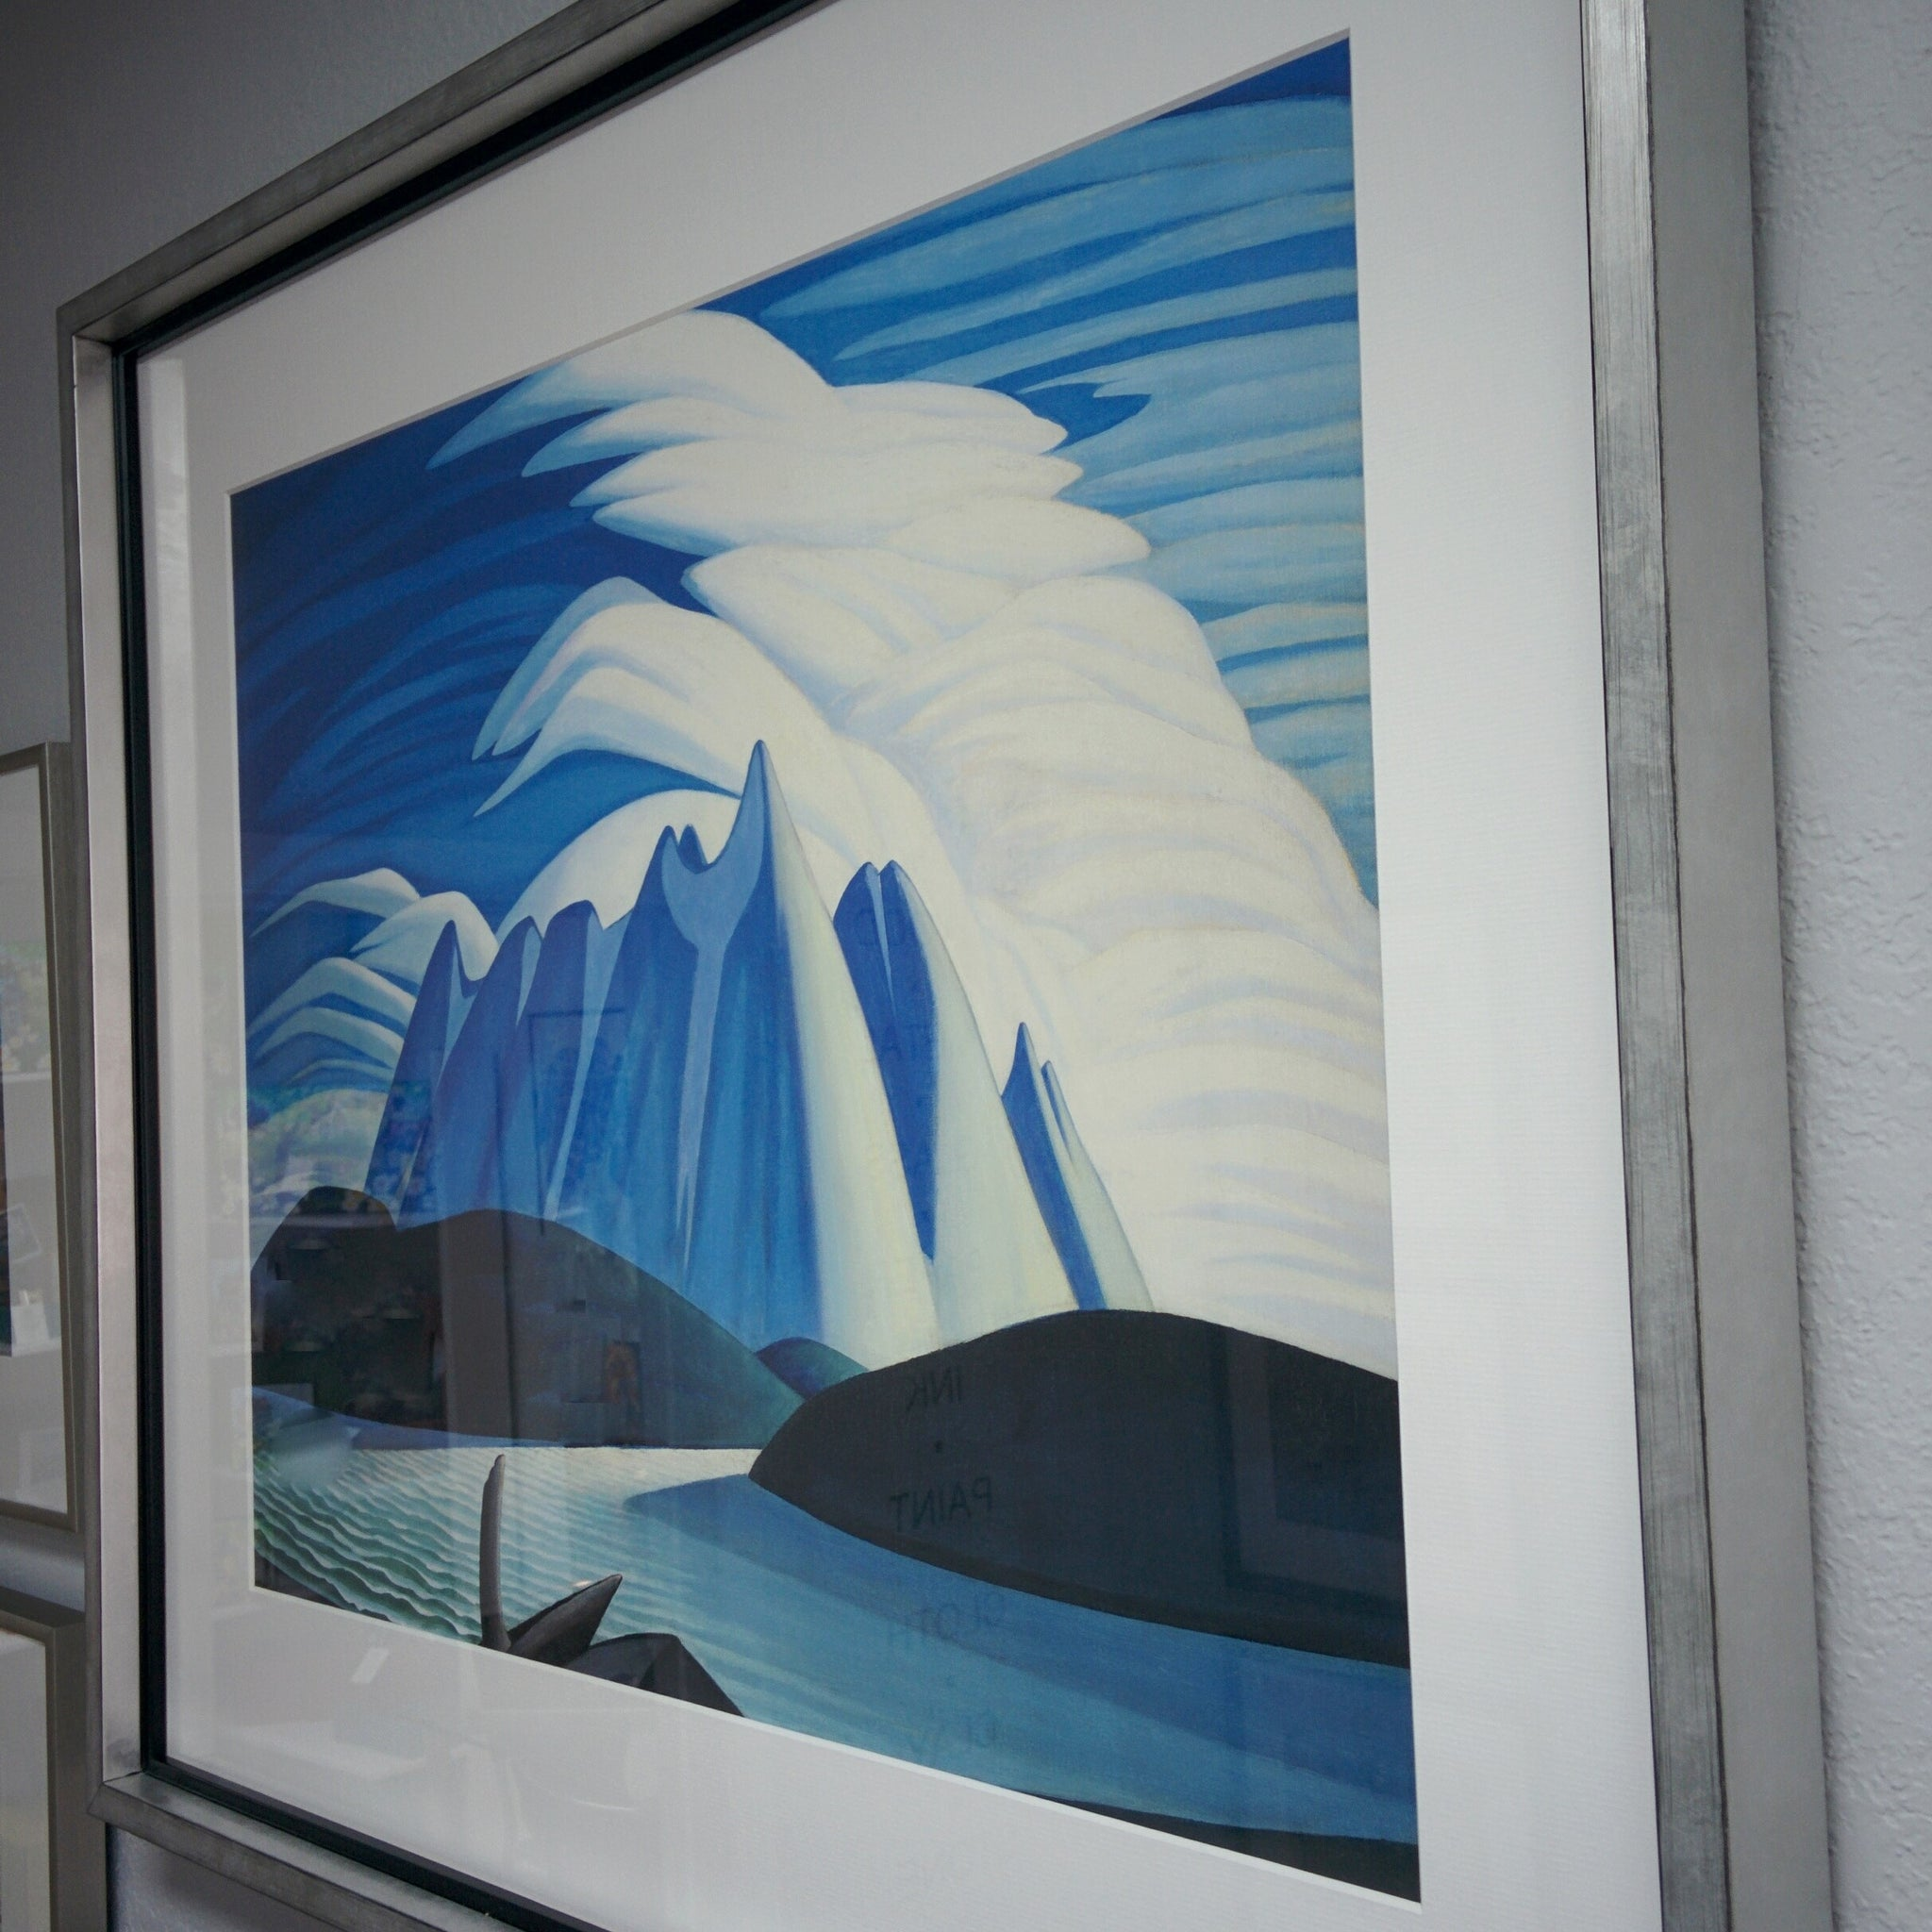 Group of Seven large framed print of Lawren S. Harris painting, Lake and Mountains, 1928